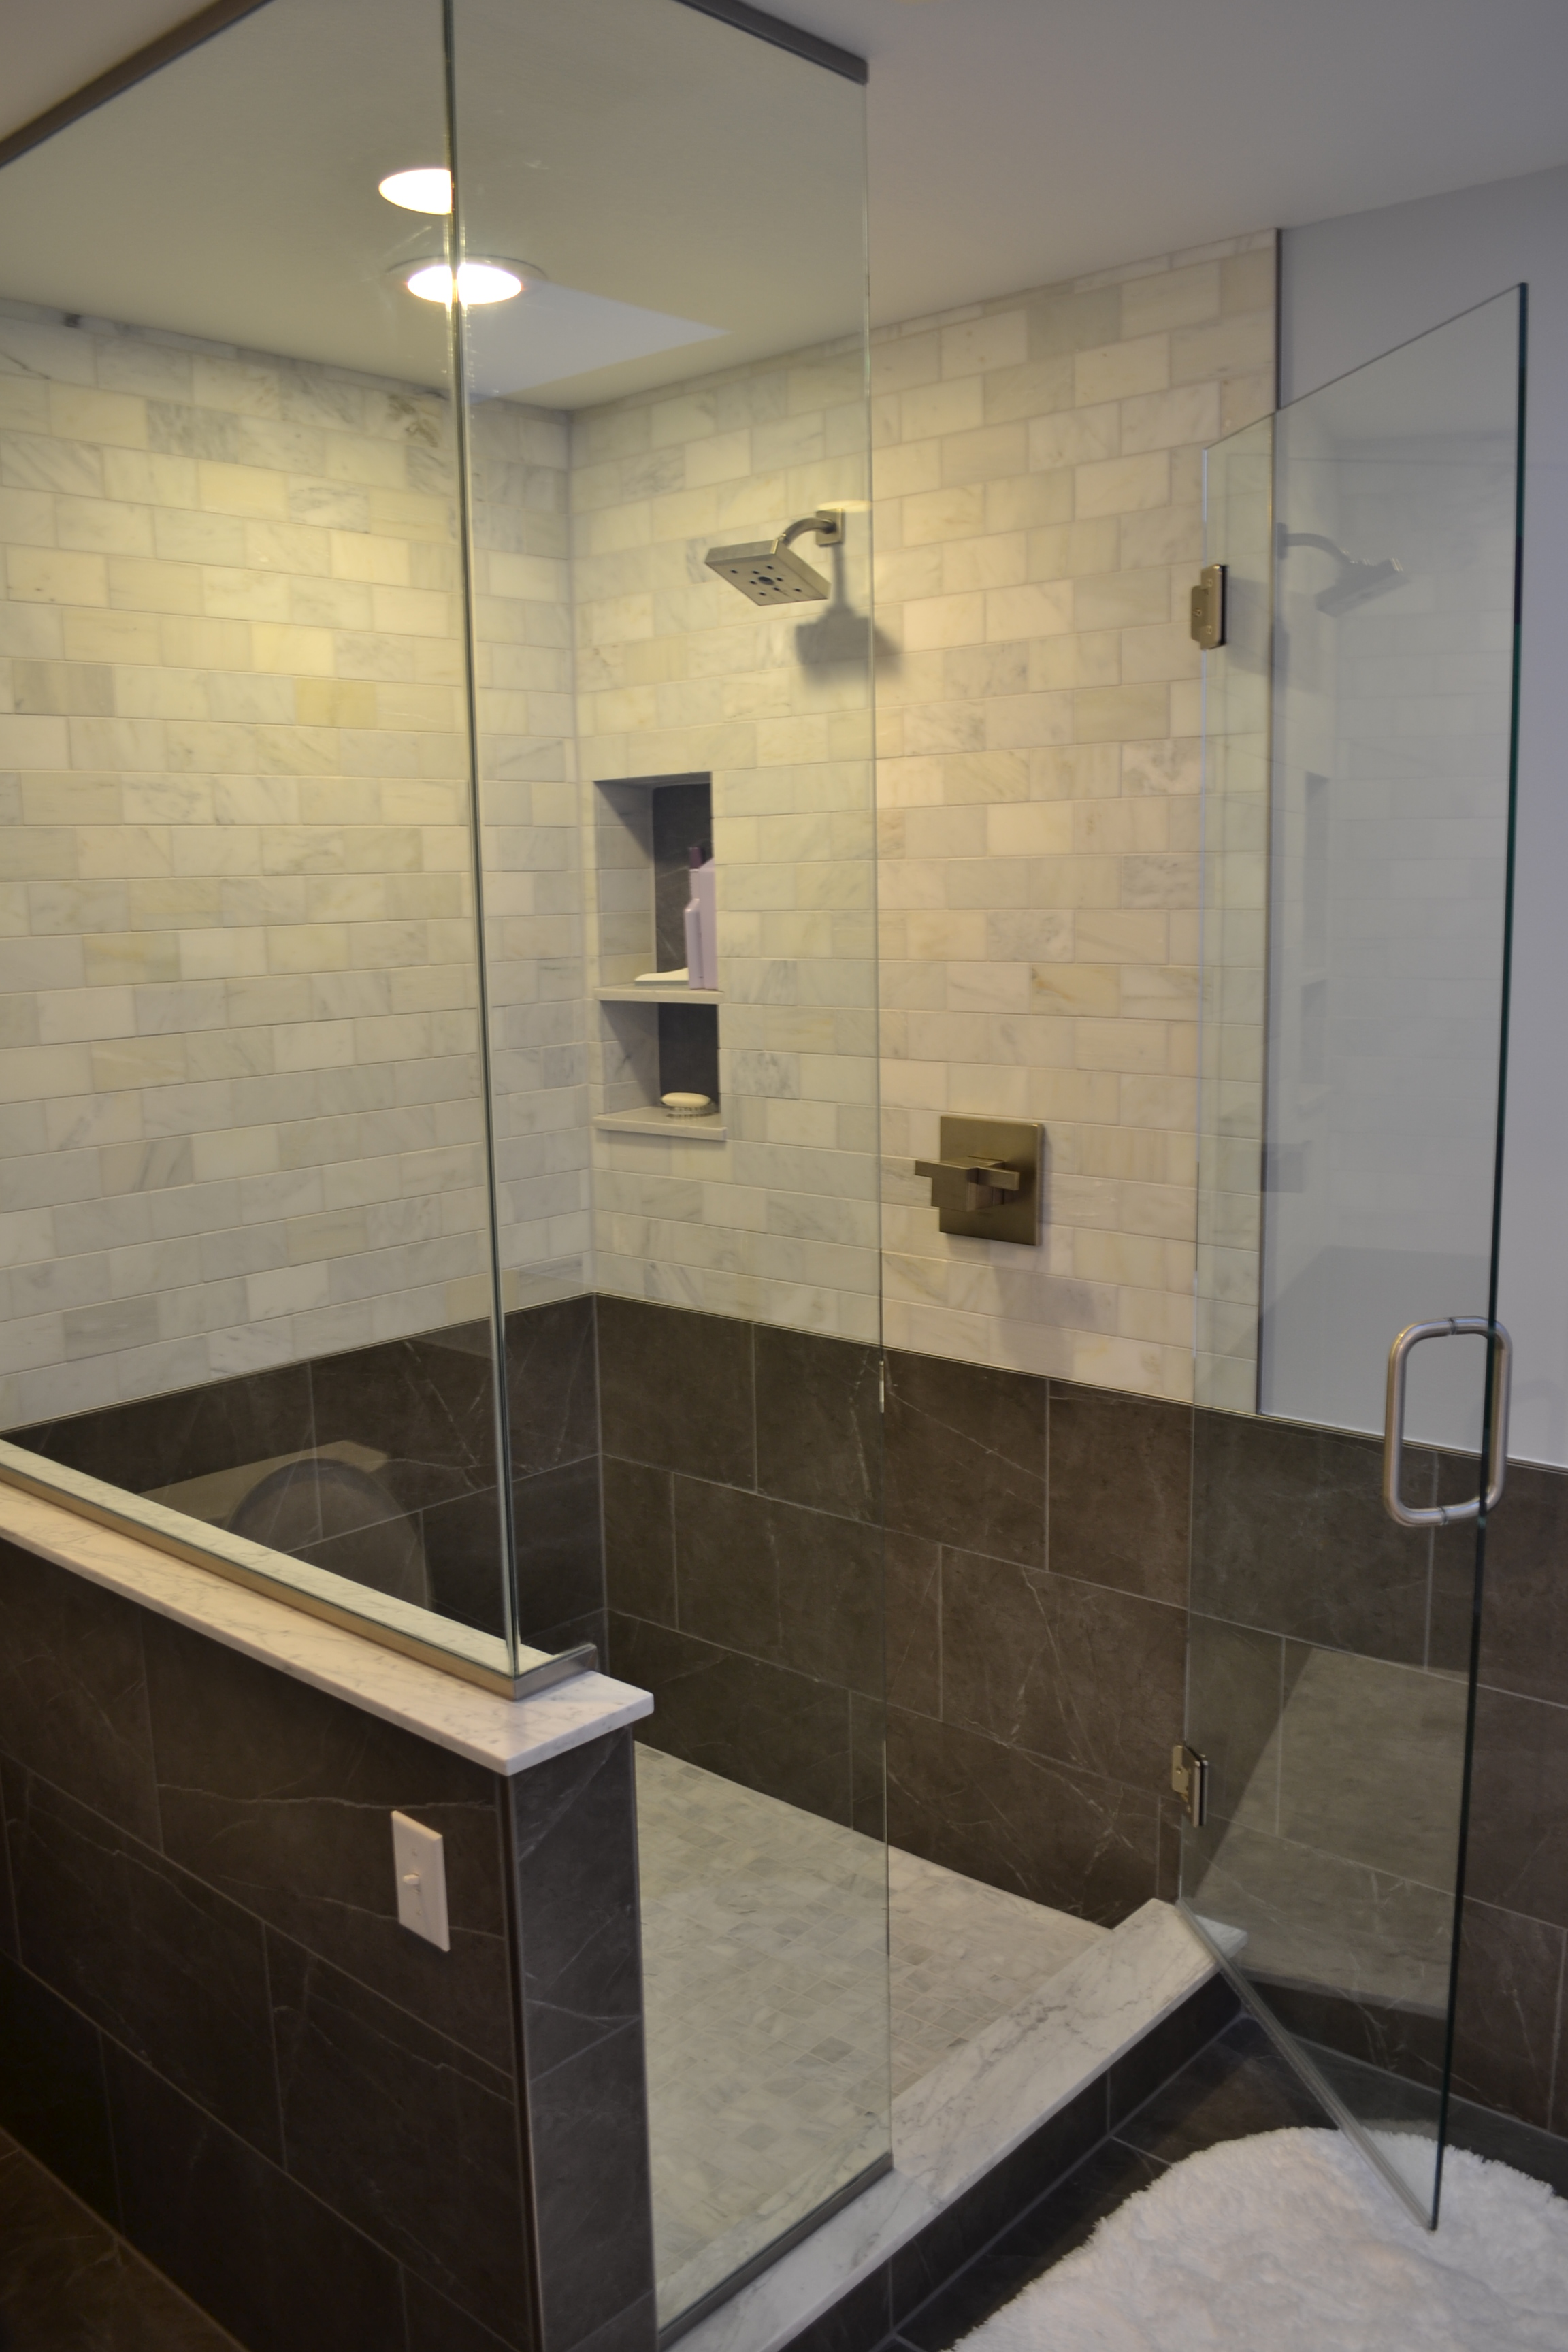 Recently Completed In Cherry Creek For Another Amazing Couple A Frameless Shower With Porcelain And Carrara Tiles Create An Inviting Unique Look